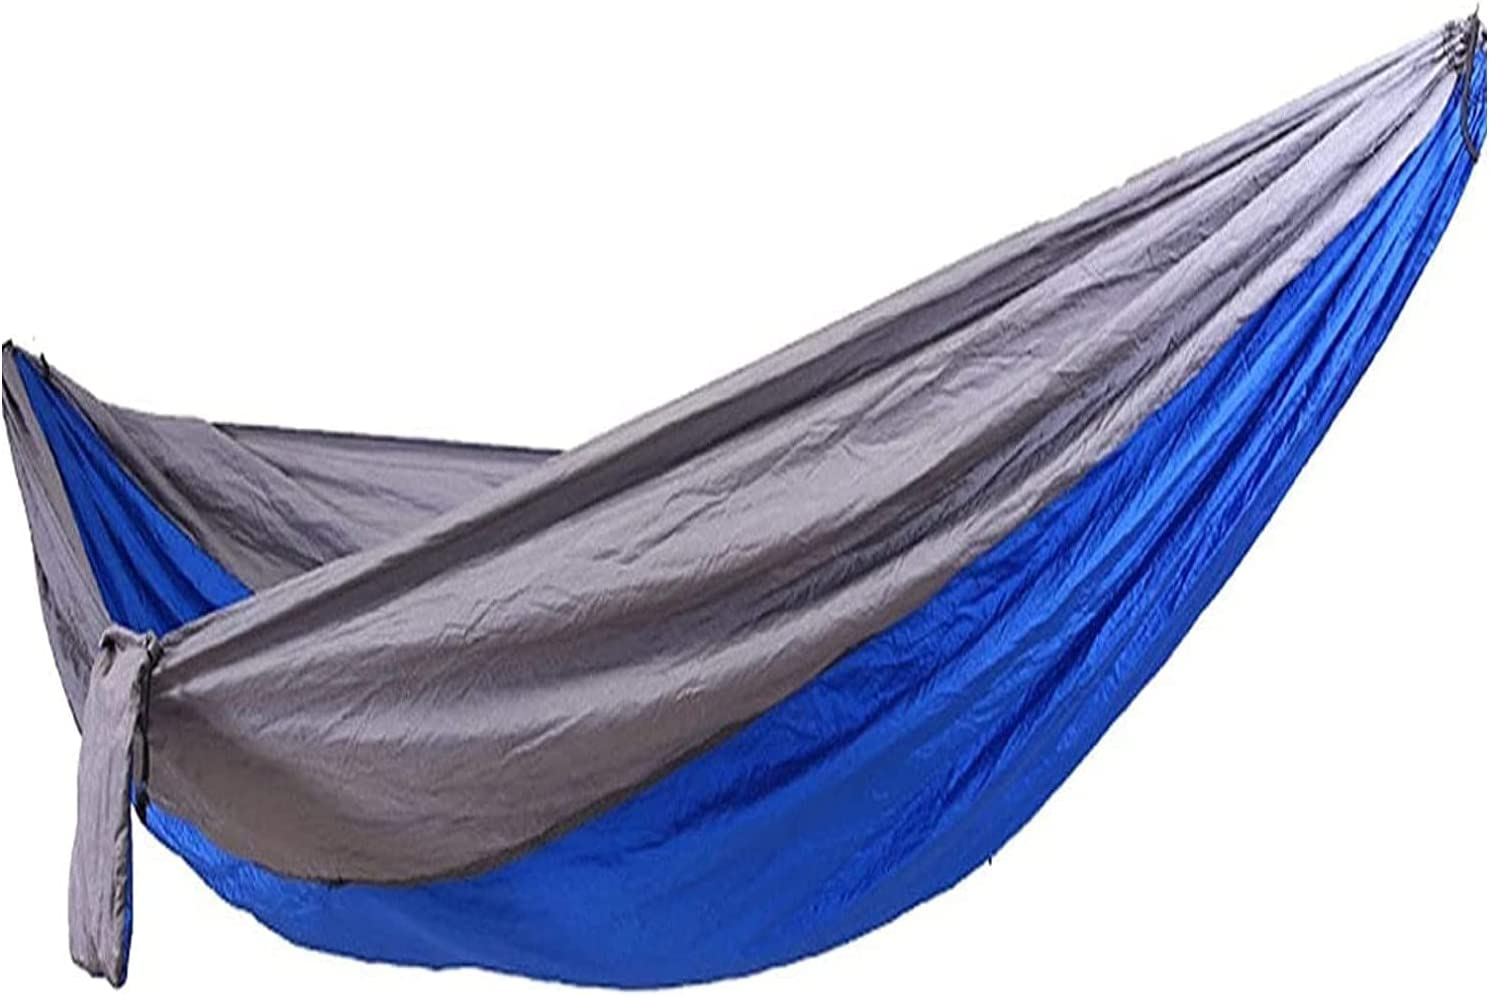 MWXFYWW Outdoor Hammock Garden Single Double Use Max 51% NEW before selling OFF Ult